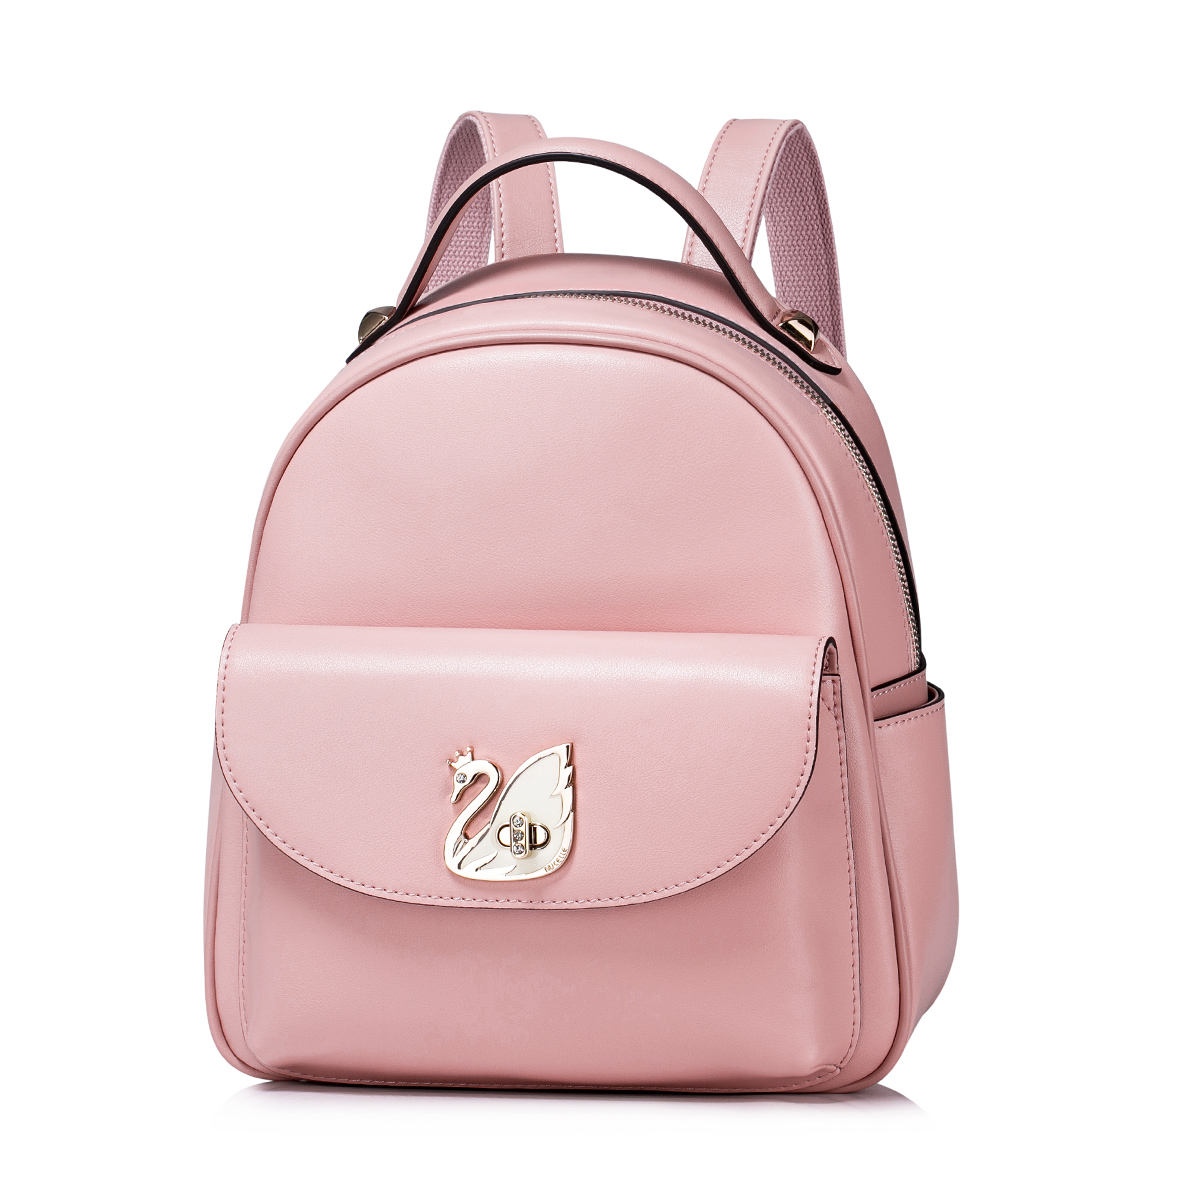 NUCELLE Genuine Leather 2016 Autumn New Casual Style Backpack Pink 39362547fbbe9